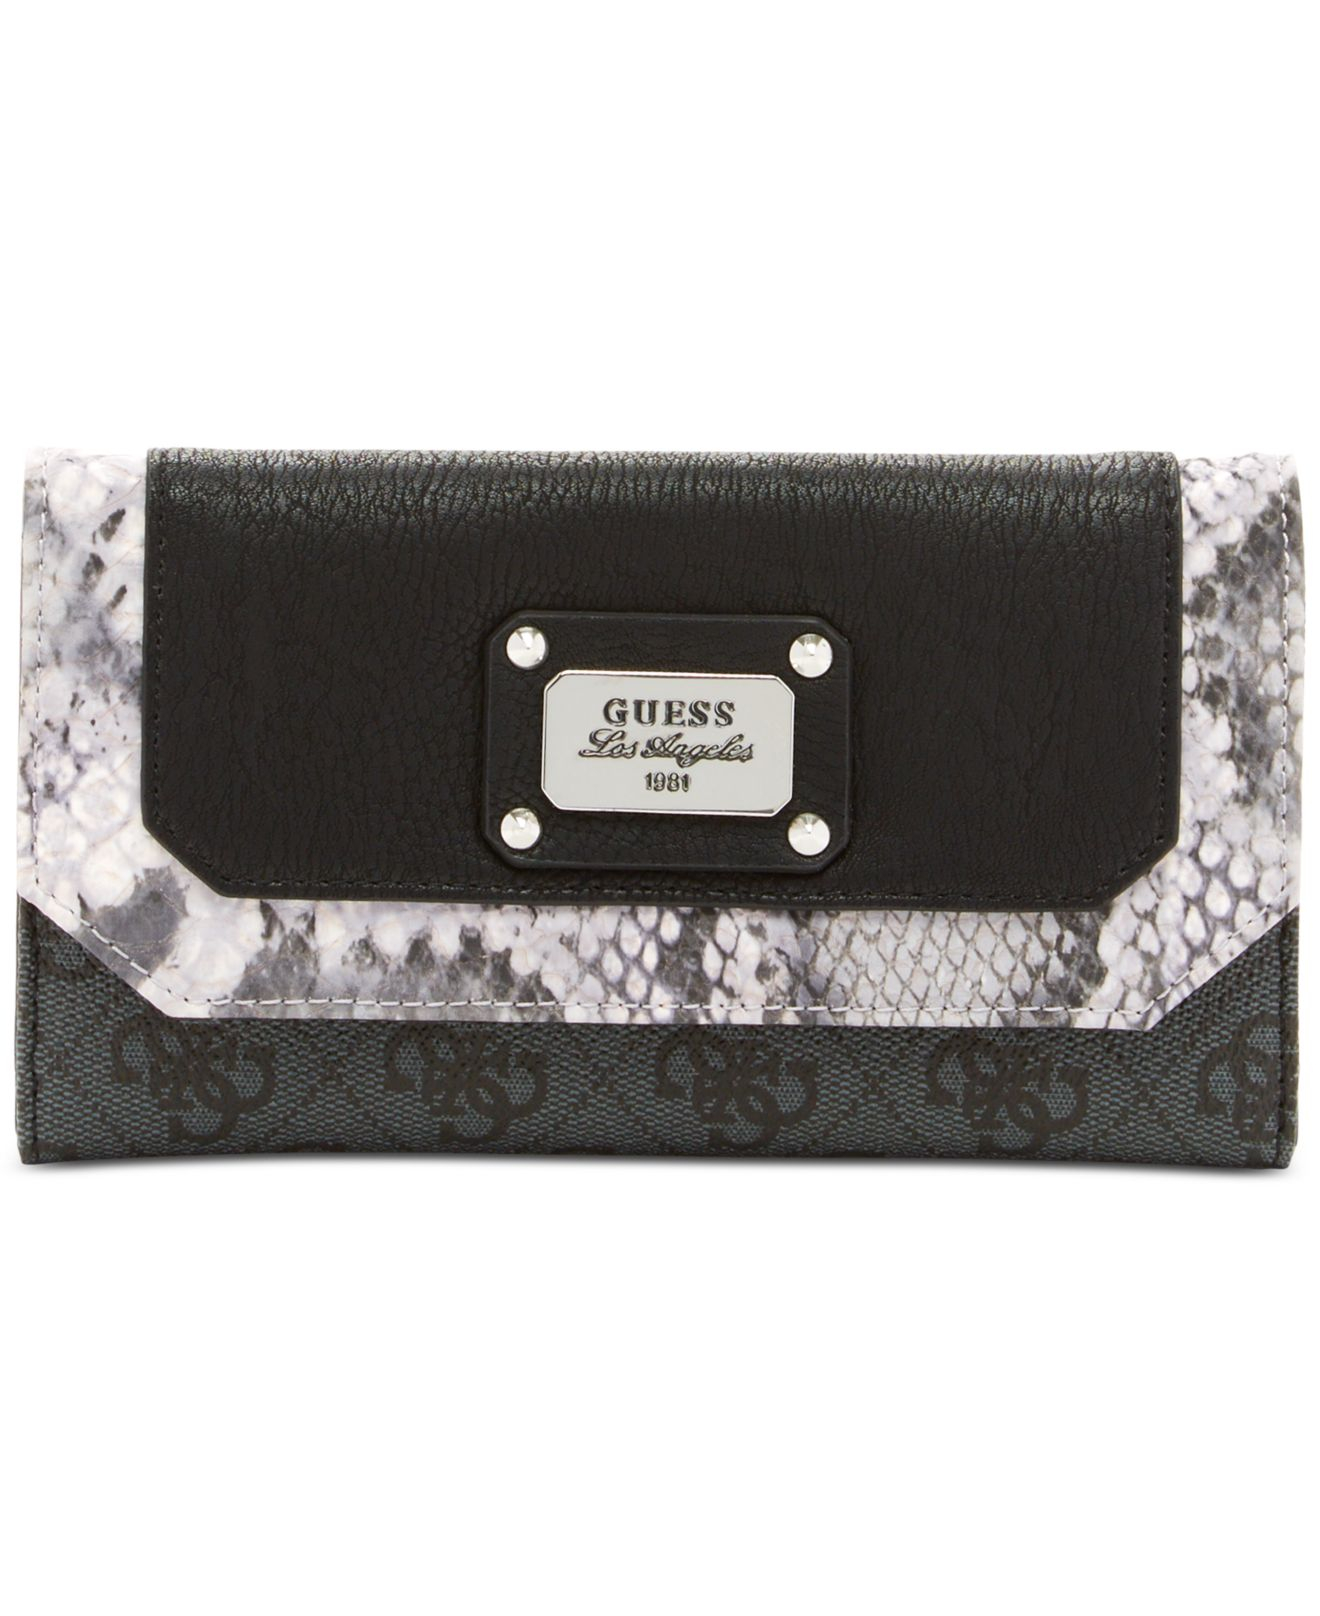 3f94e9939fc Guess Ladies Wallet - Best Photo Wallet Justiceforkenny.Org